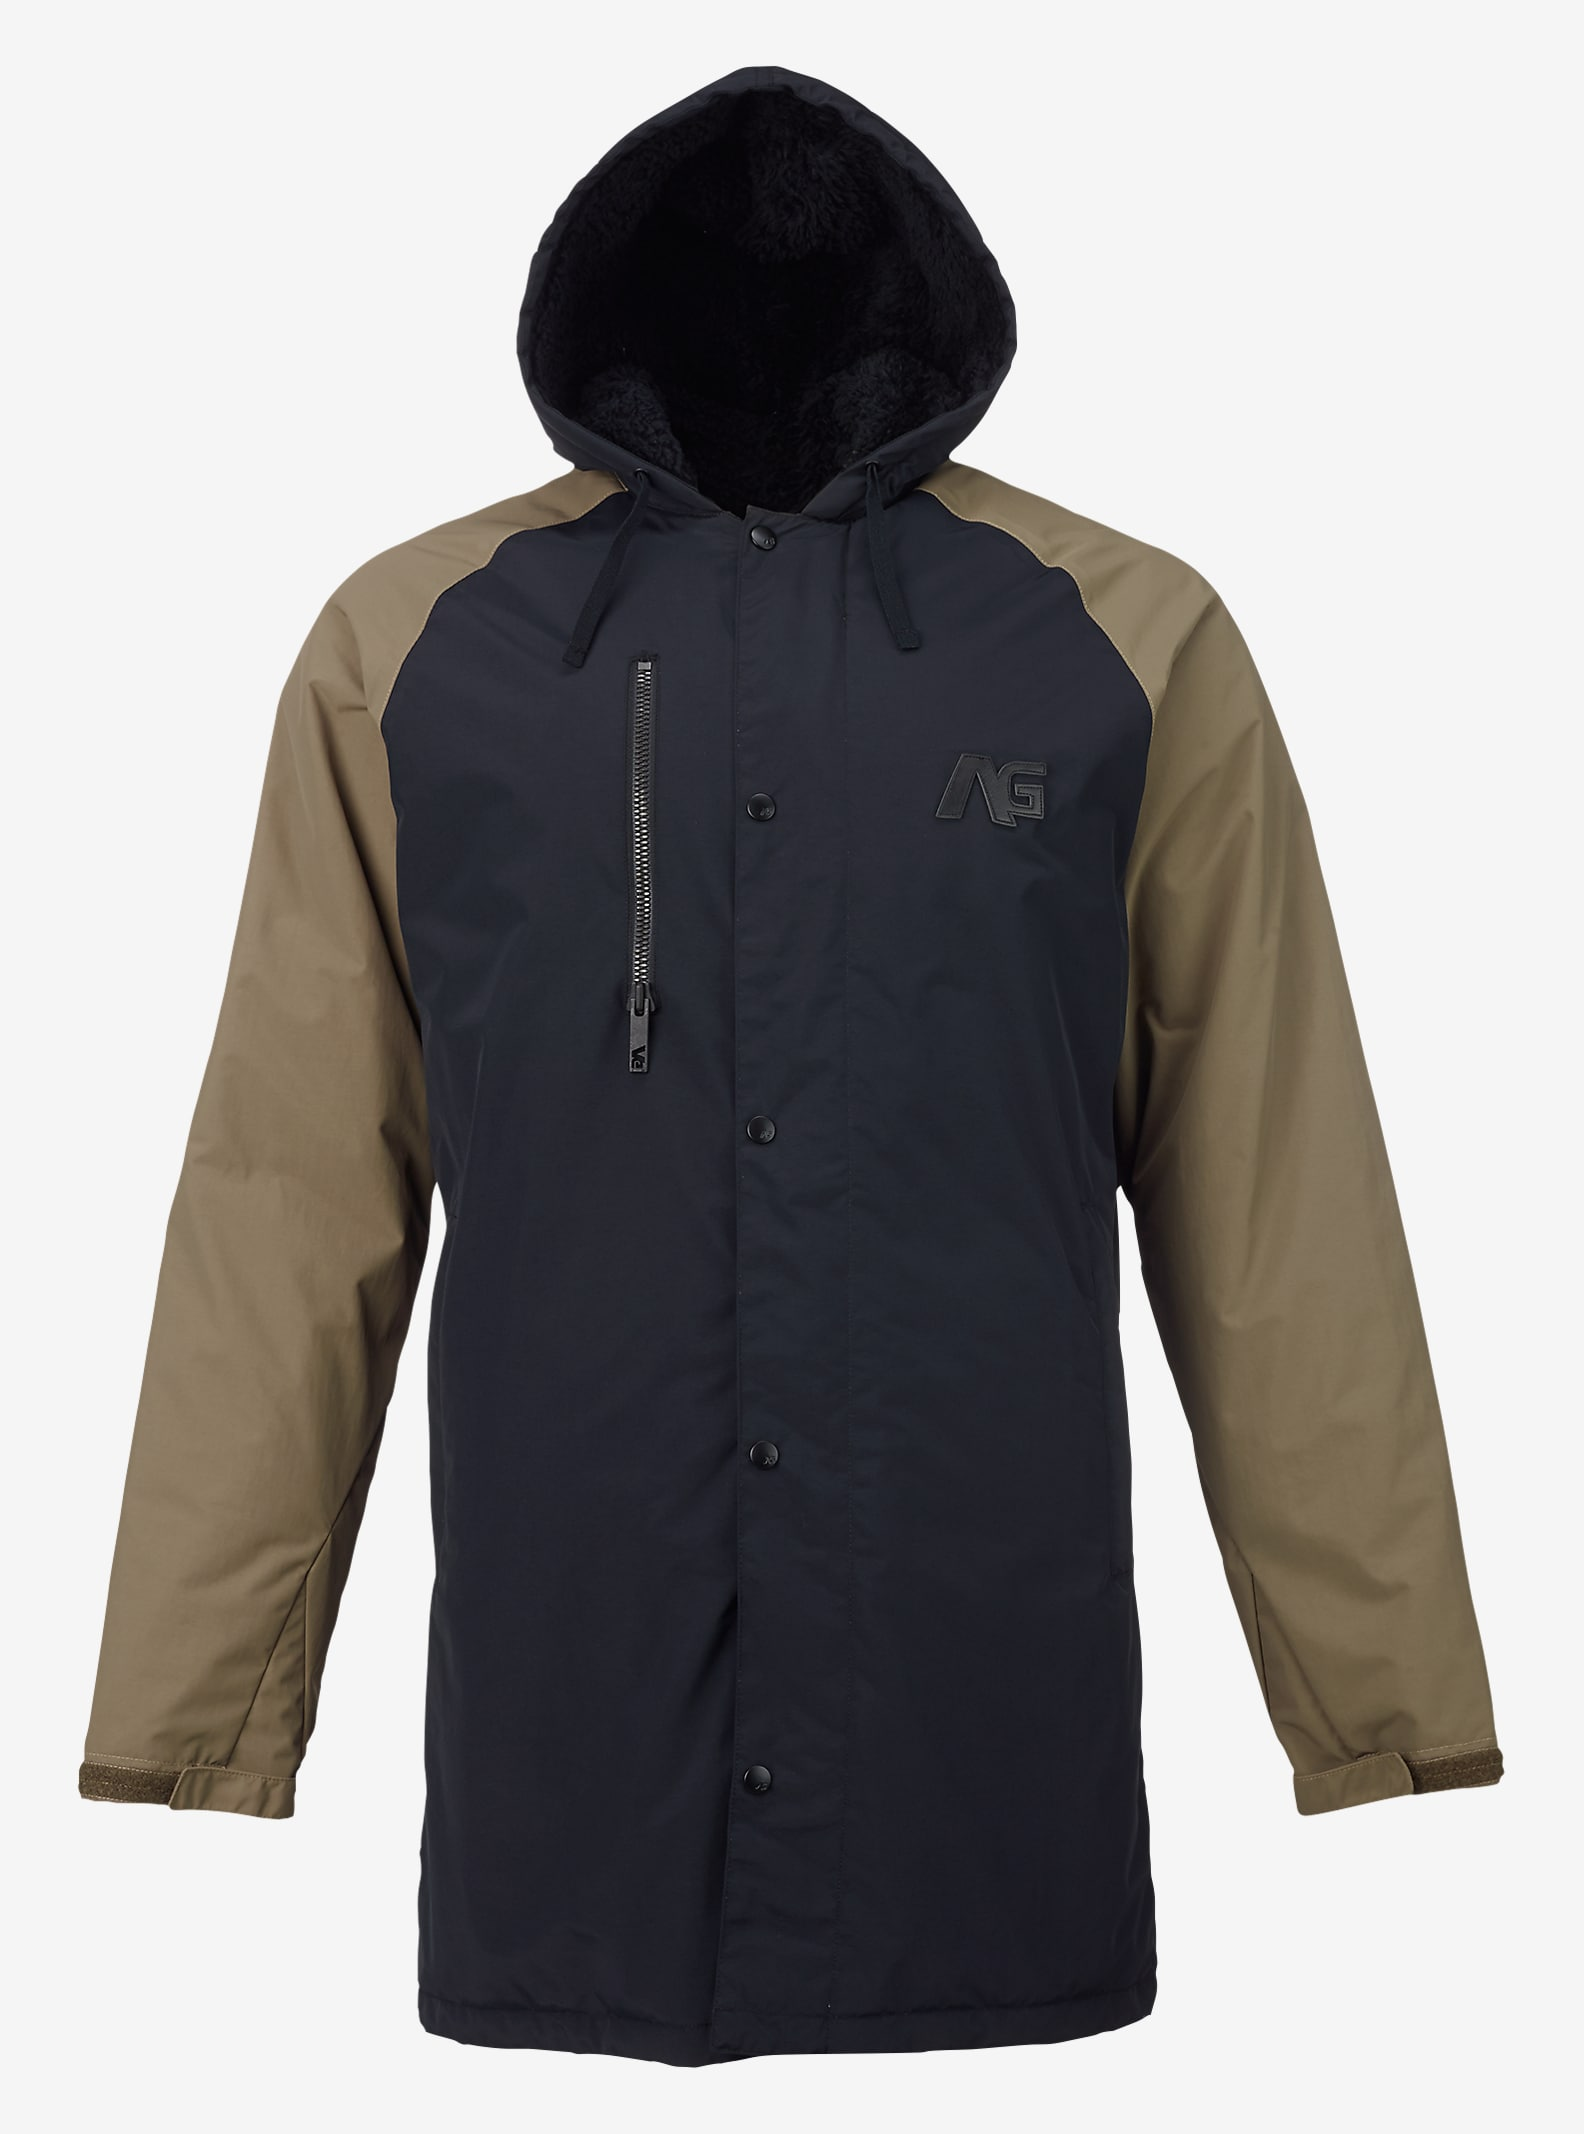 Analog Stadium Parka shown in True Black / Soil